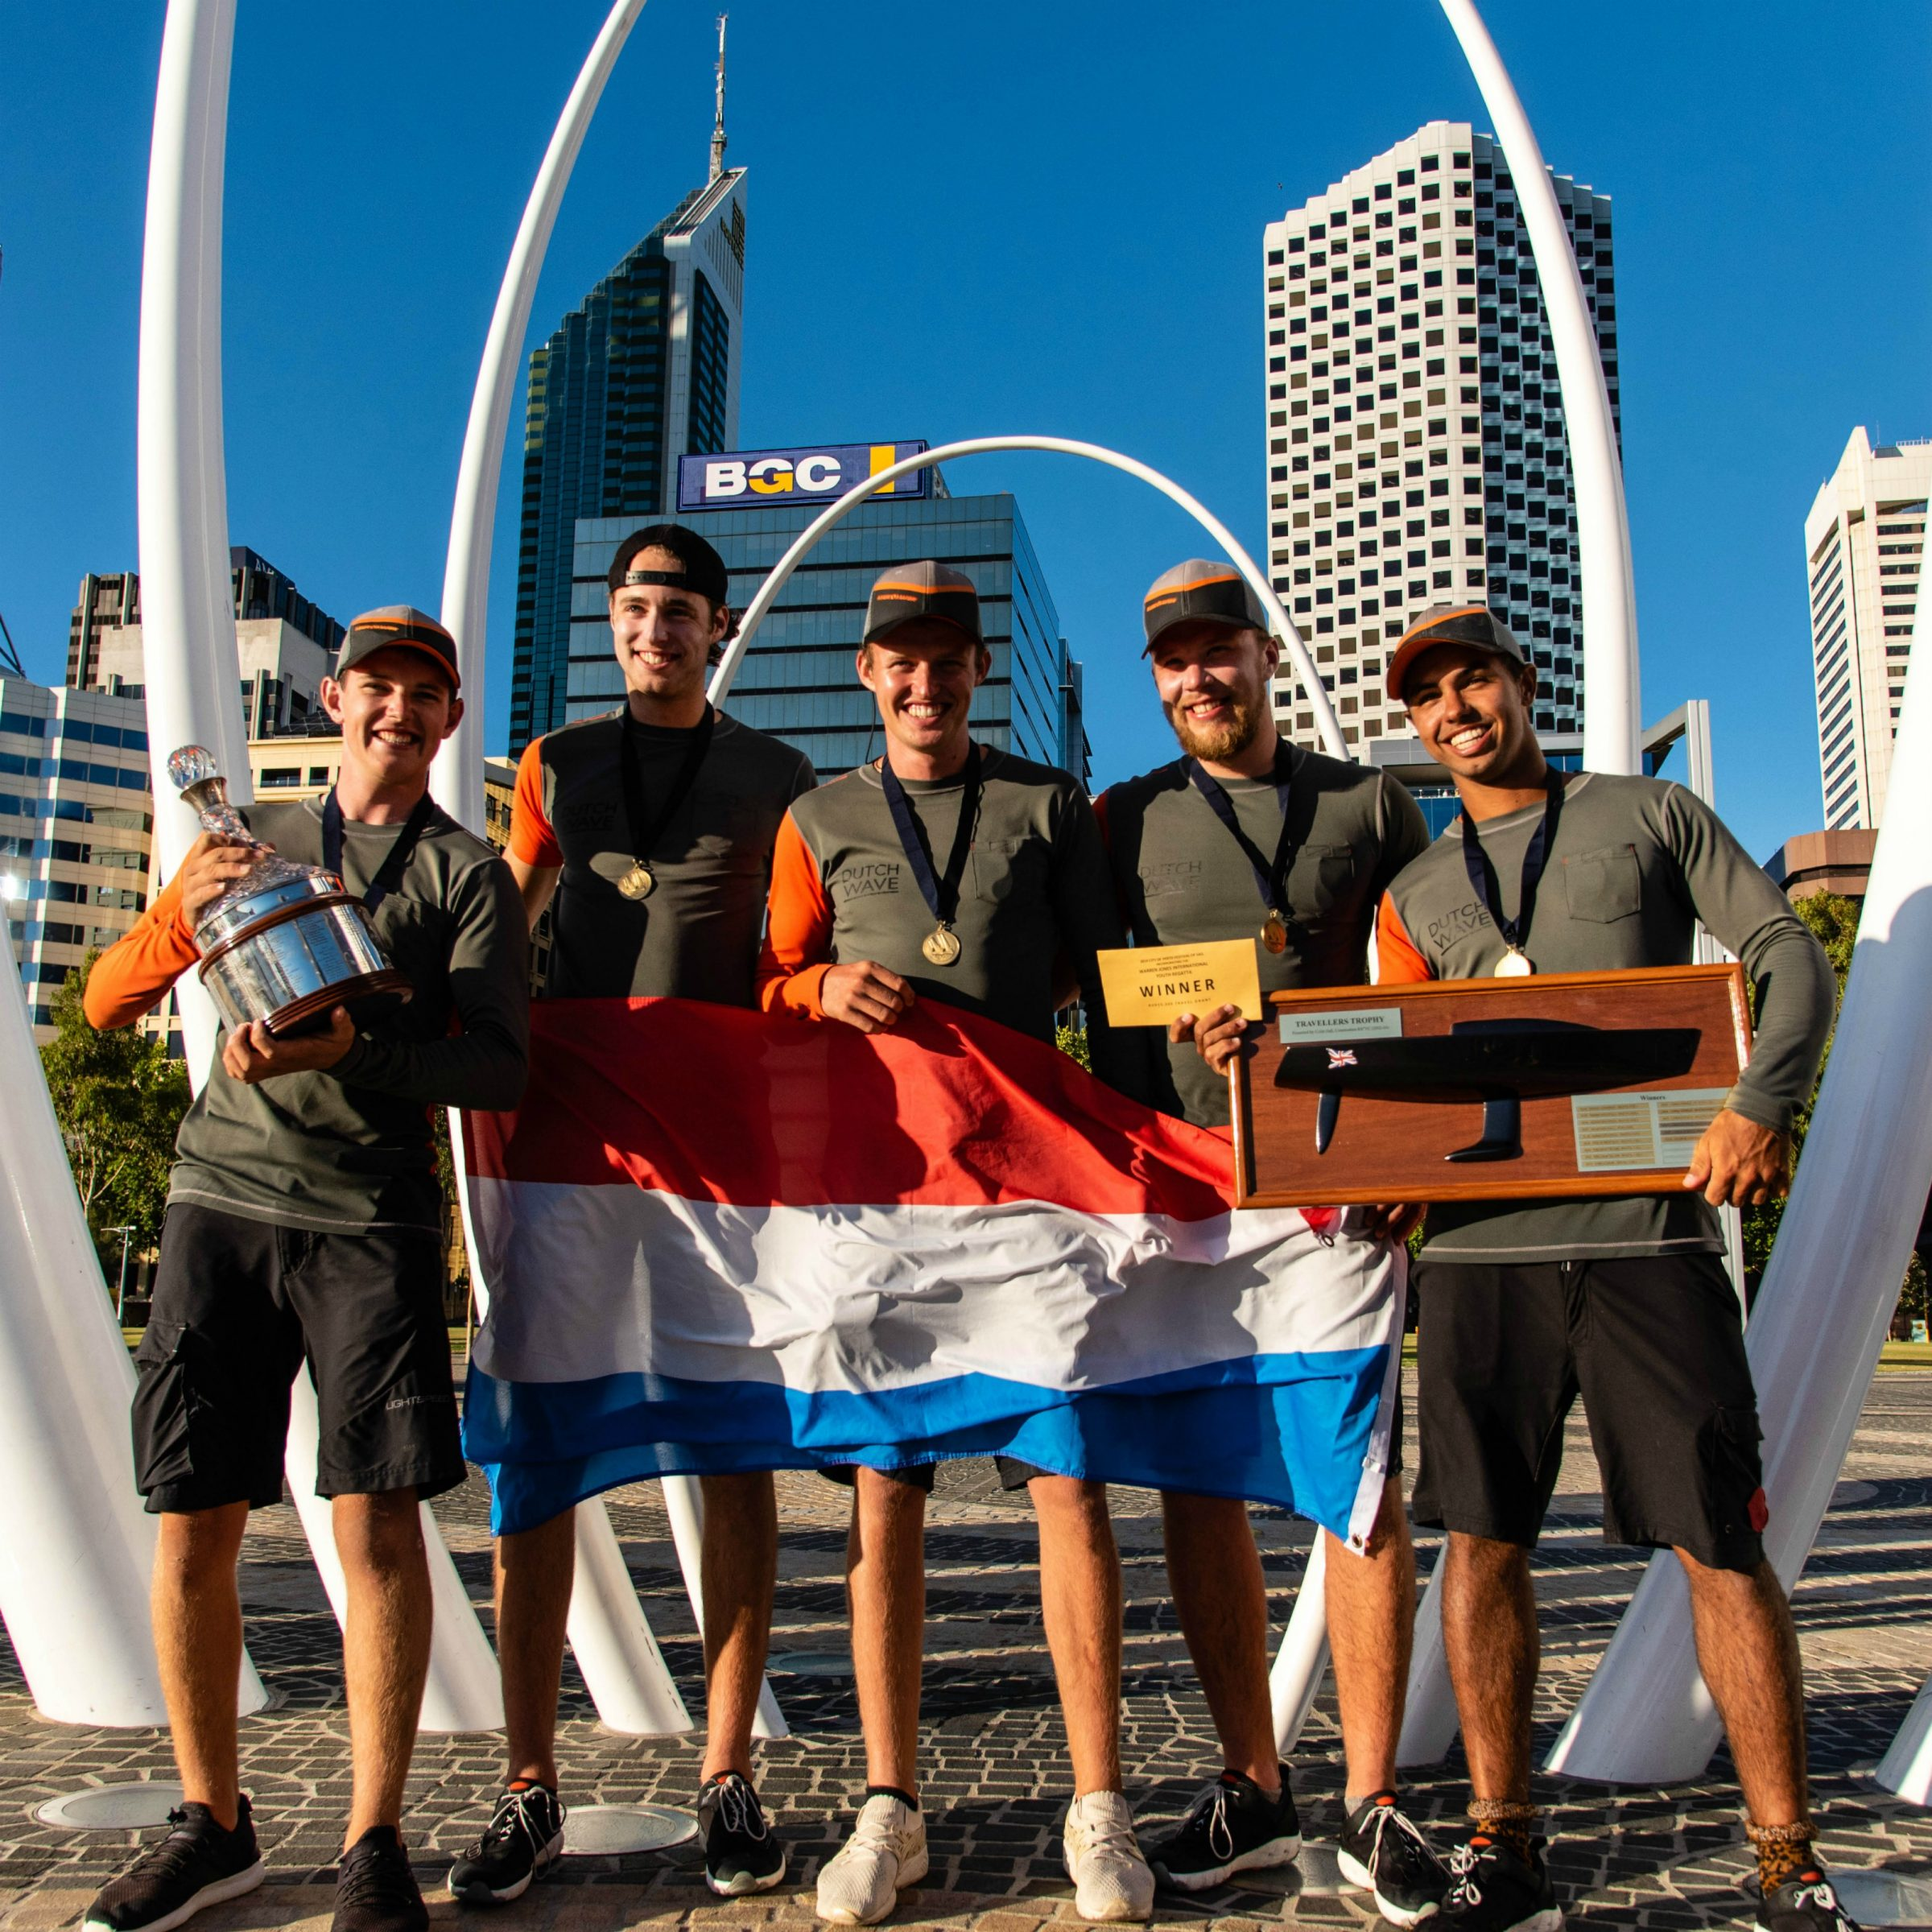 team dutch wave, skippered by jelmer van beek, from the netherlands, winners of the 2019 warren jones international youth regatta, sponsored by the city of perth, organised by swan river sailing, an iconic youth match racing regatta in perth, western australia